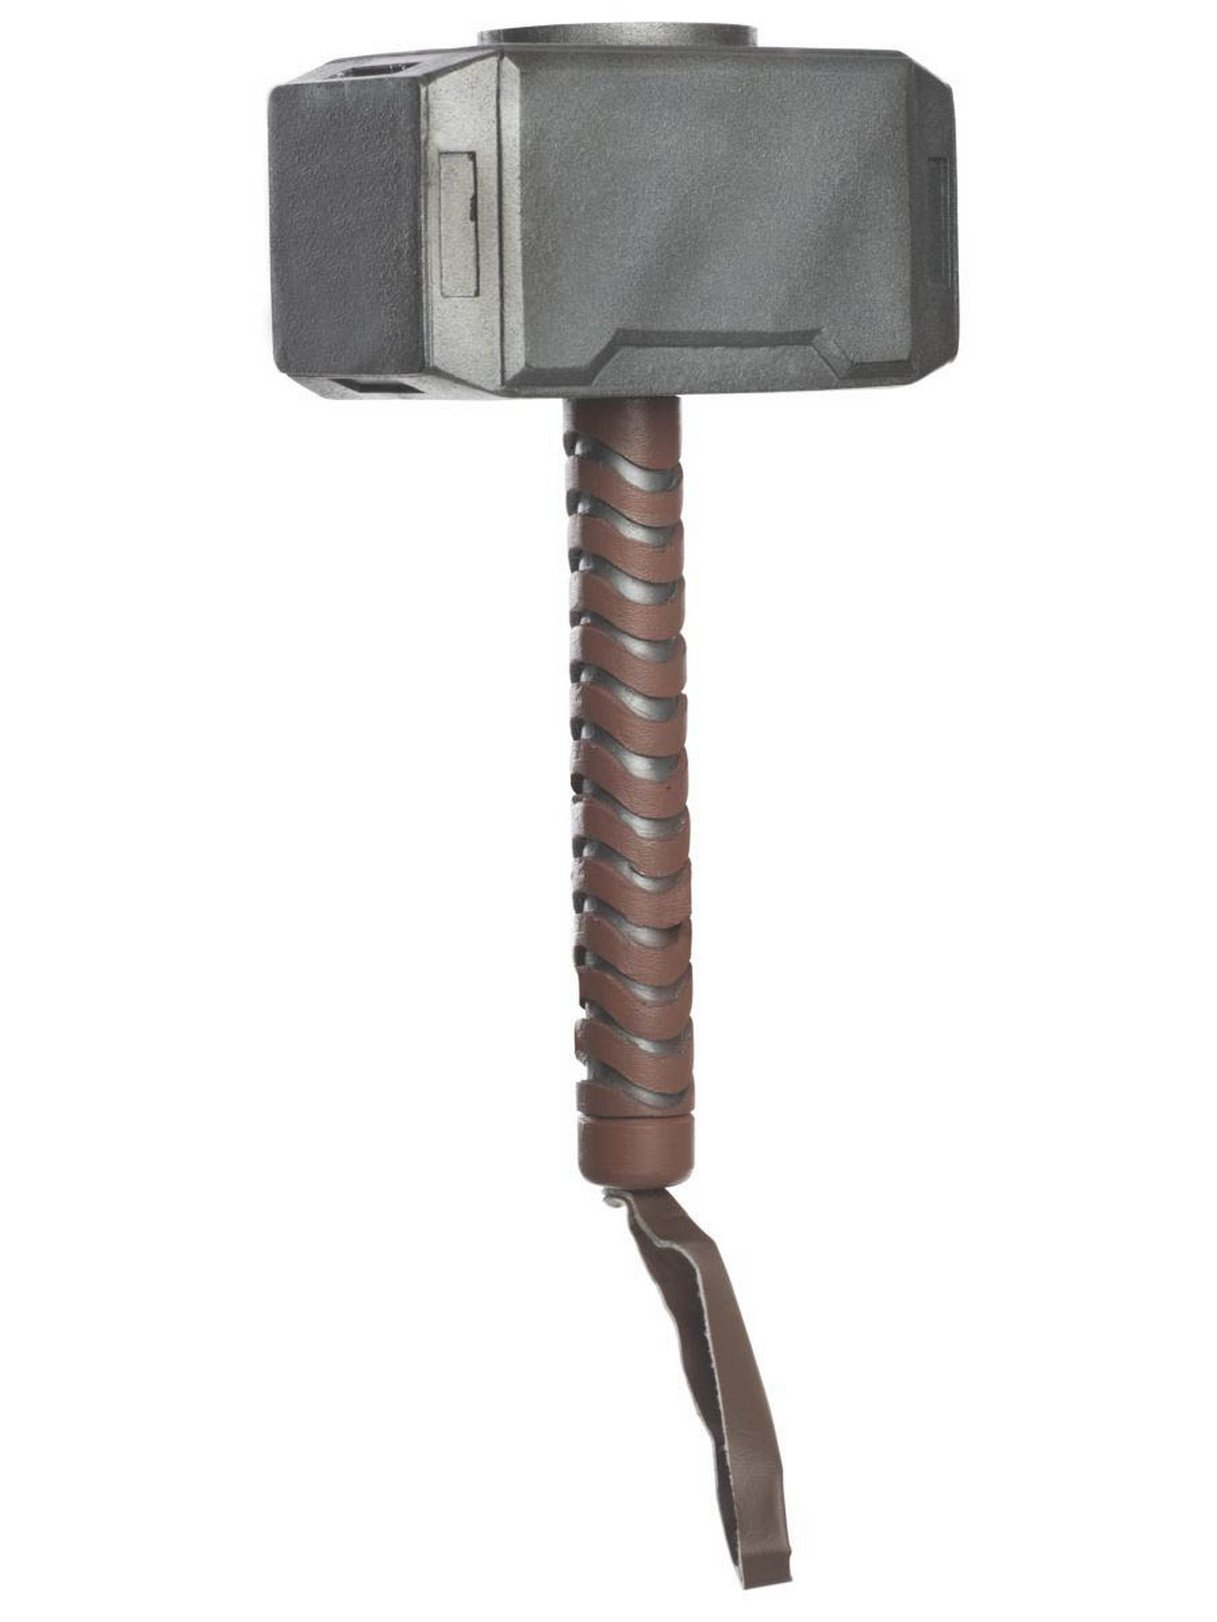 Rubie's Avengers Assemble Thor Hammer Roleplay Toy by Rubie's